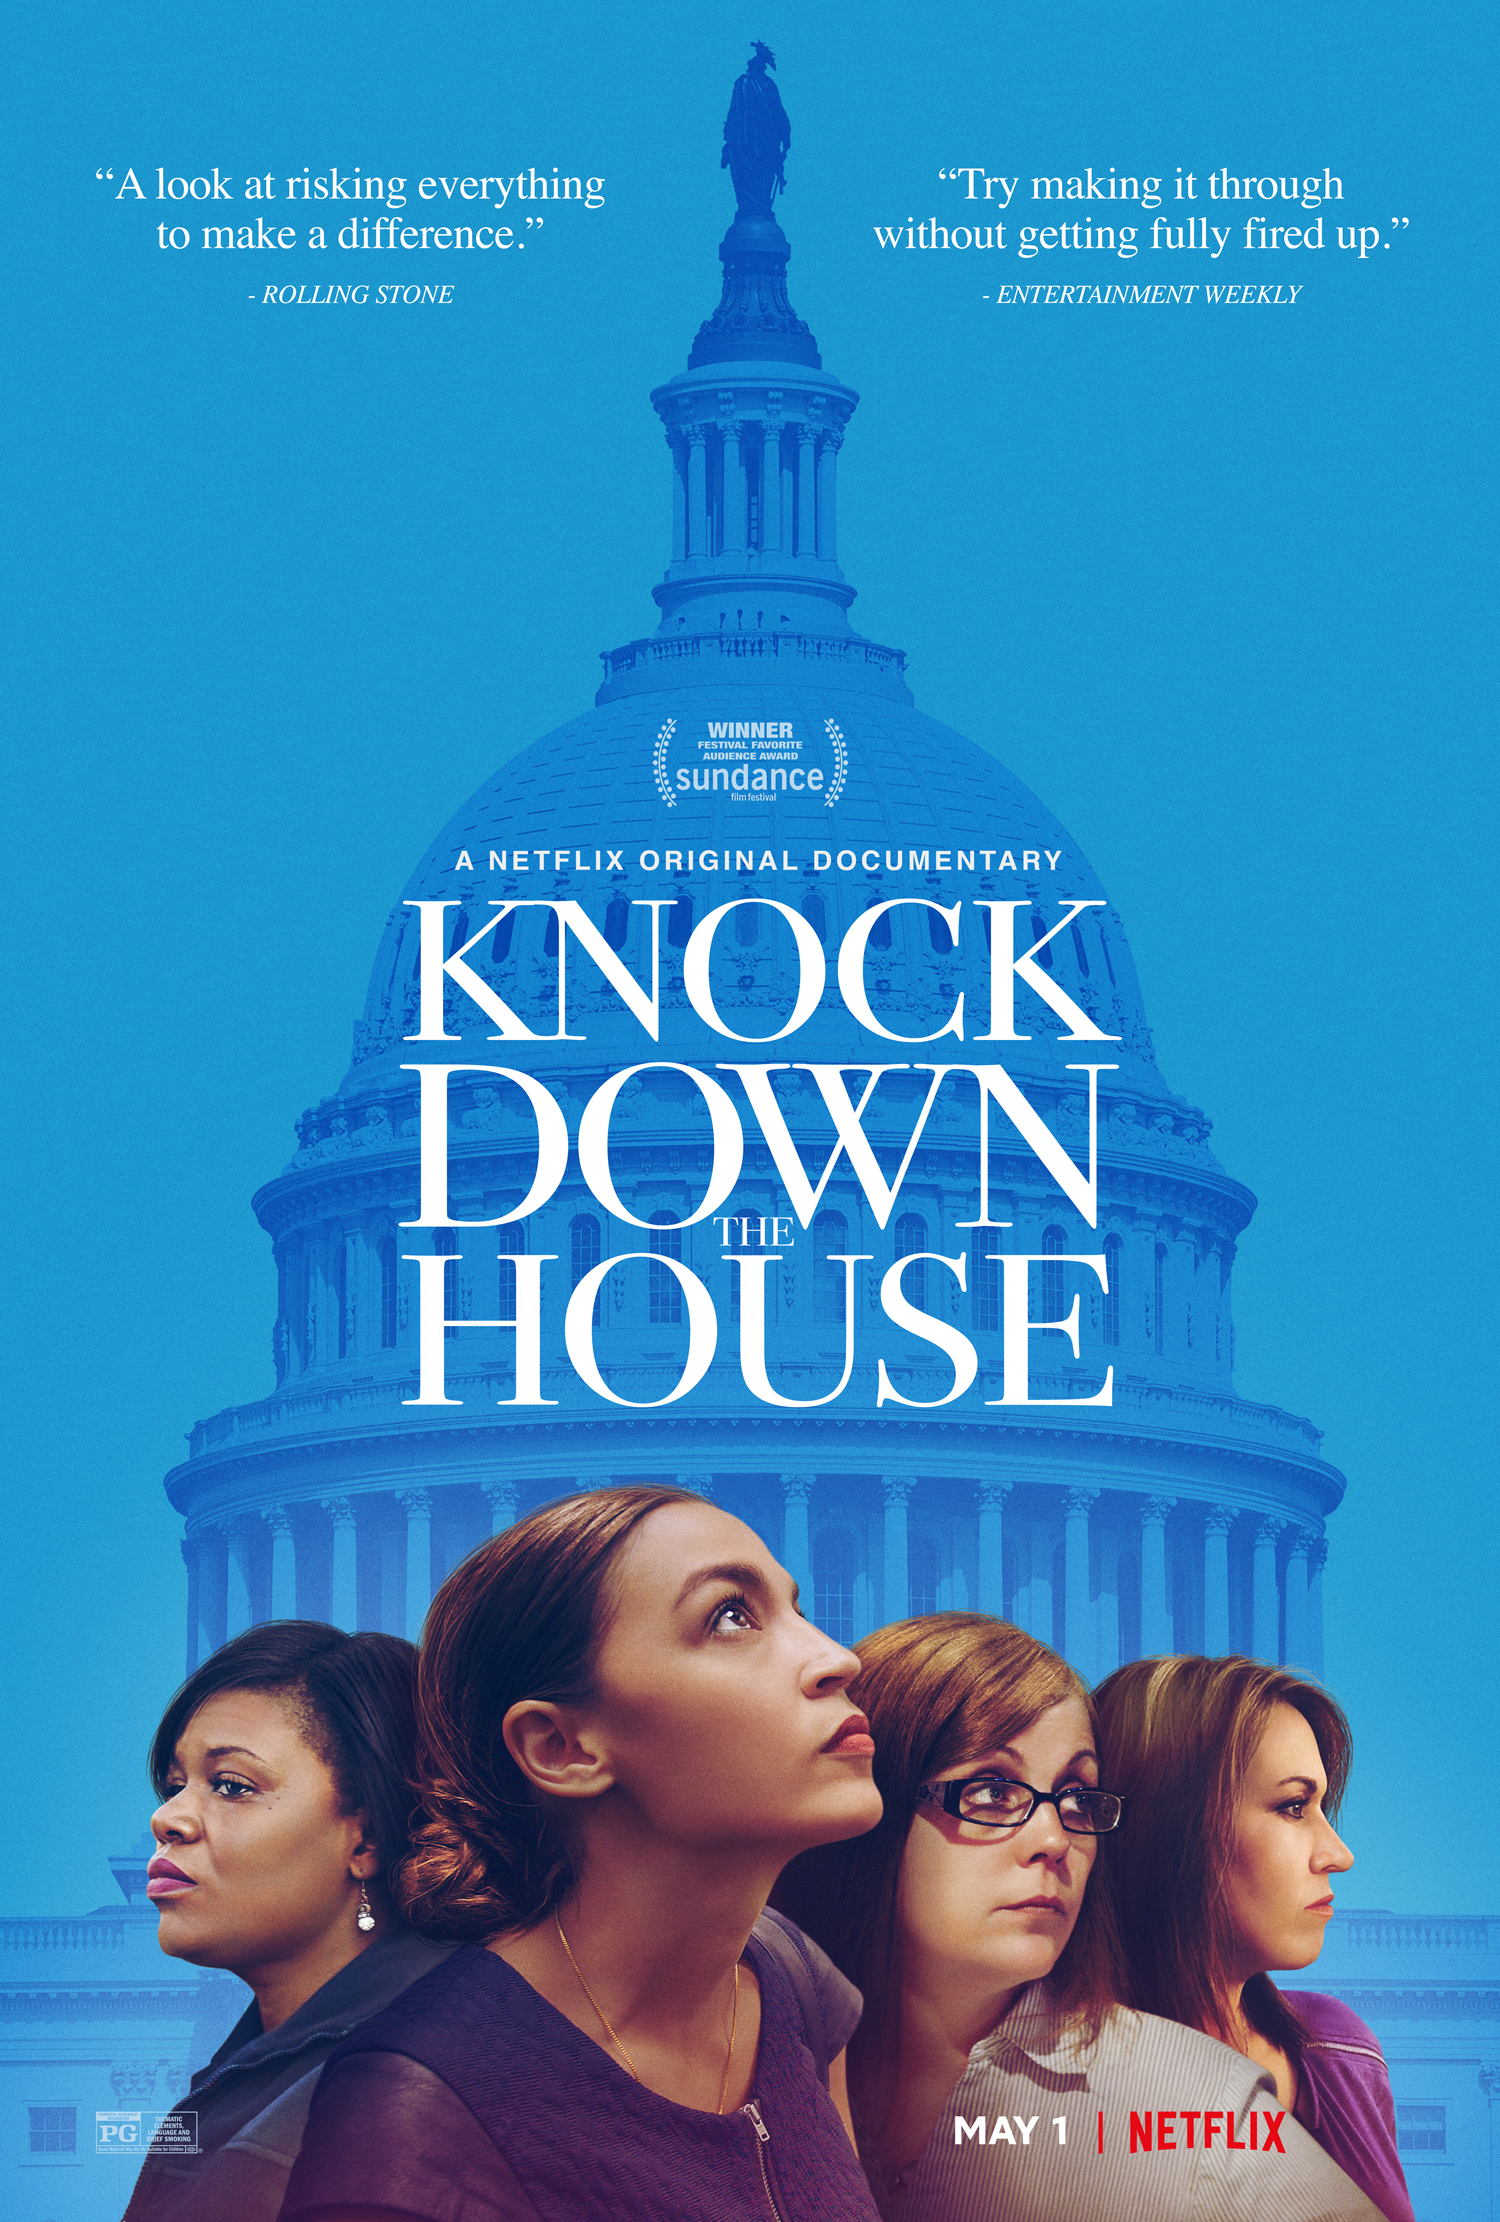 Knock Down the House film poster